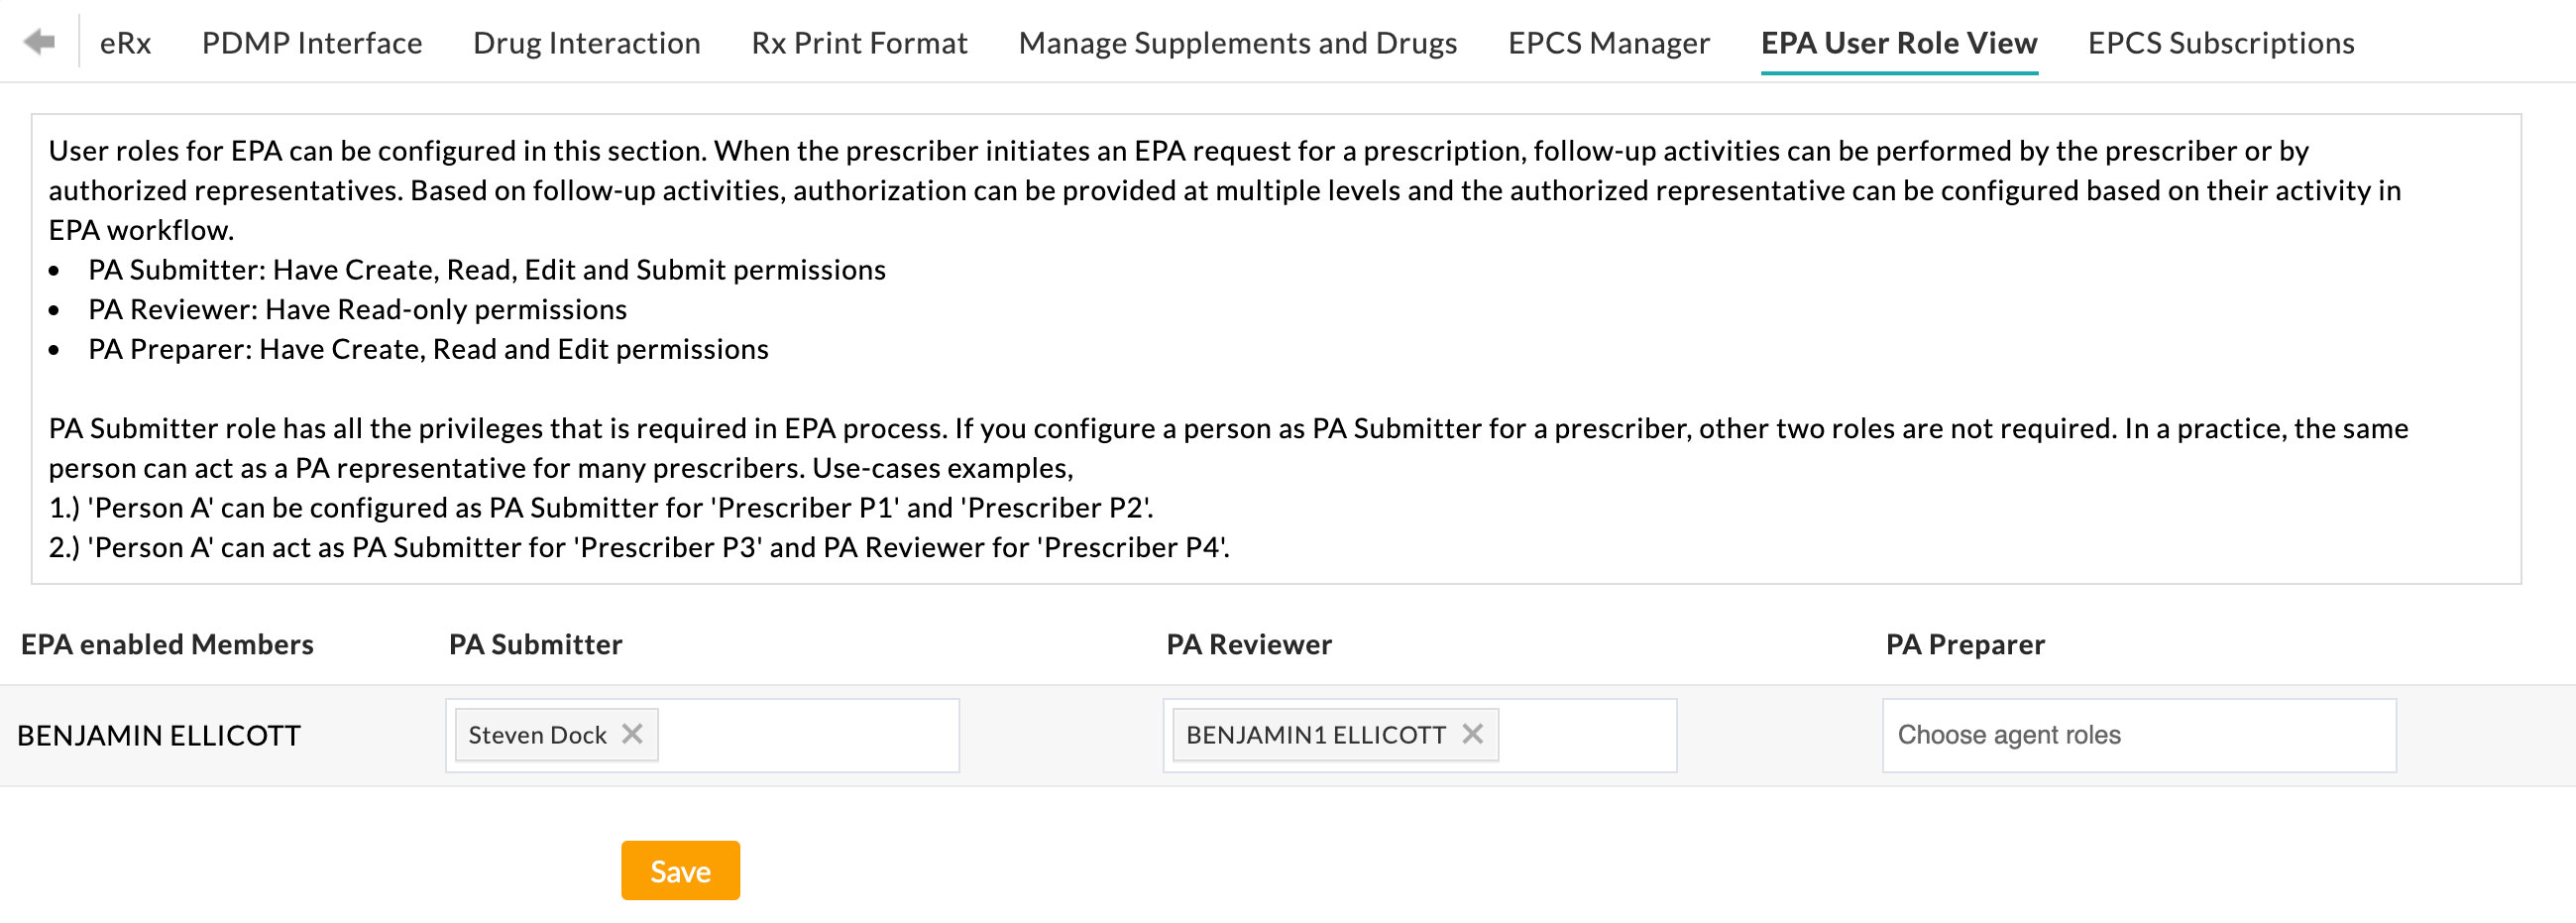 EPA User Role View